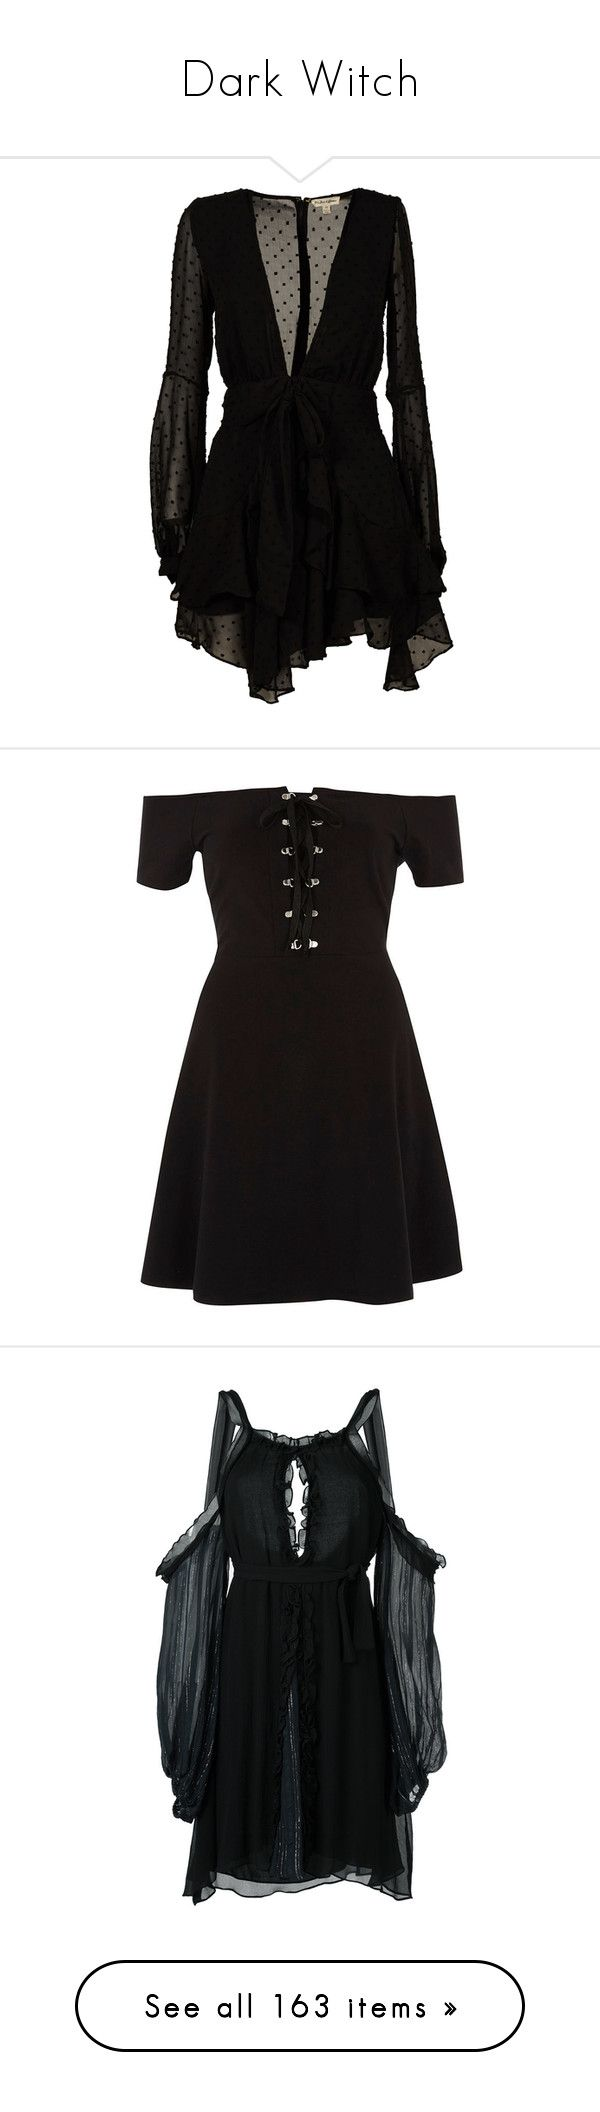 """Dark Witch"" by ali-thegr8 ❤ liked on Polyvore featuring dresses, black, womenclothingdresses, long sleeve polka dot dress, long sleeve dress, dot dress, button dress, long sleeve mini dress, skater dresses and women"